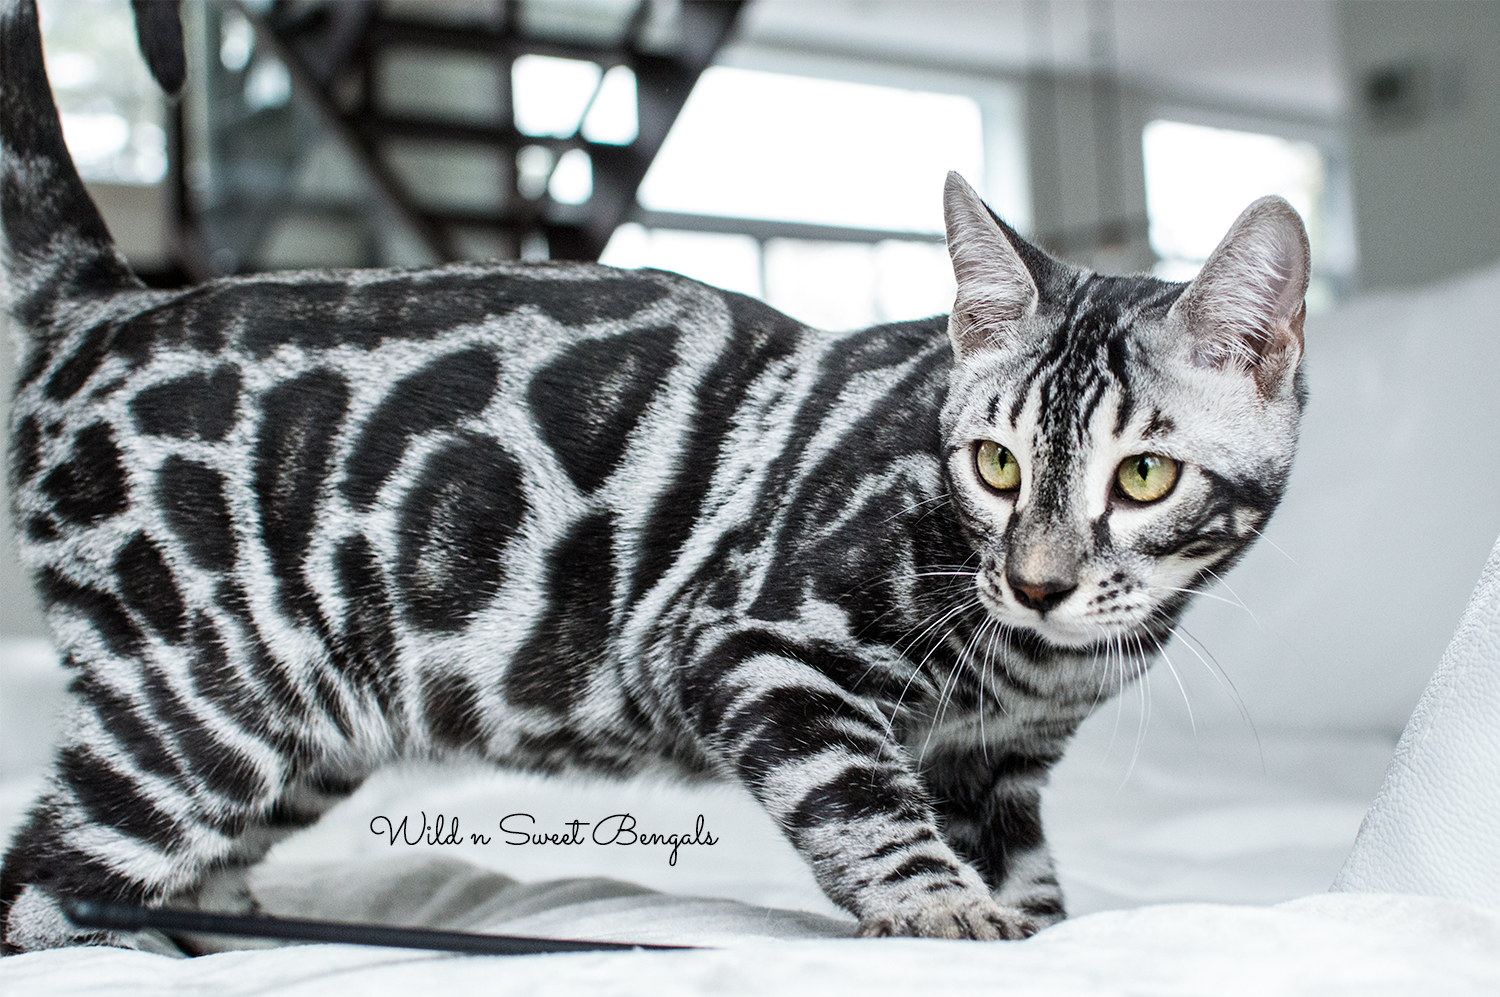 Discover Our Breeding Bengal Cats Wild Sweet Bengals Bengal Kitten Bengal Cat Silver Bengal Cat